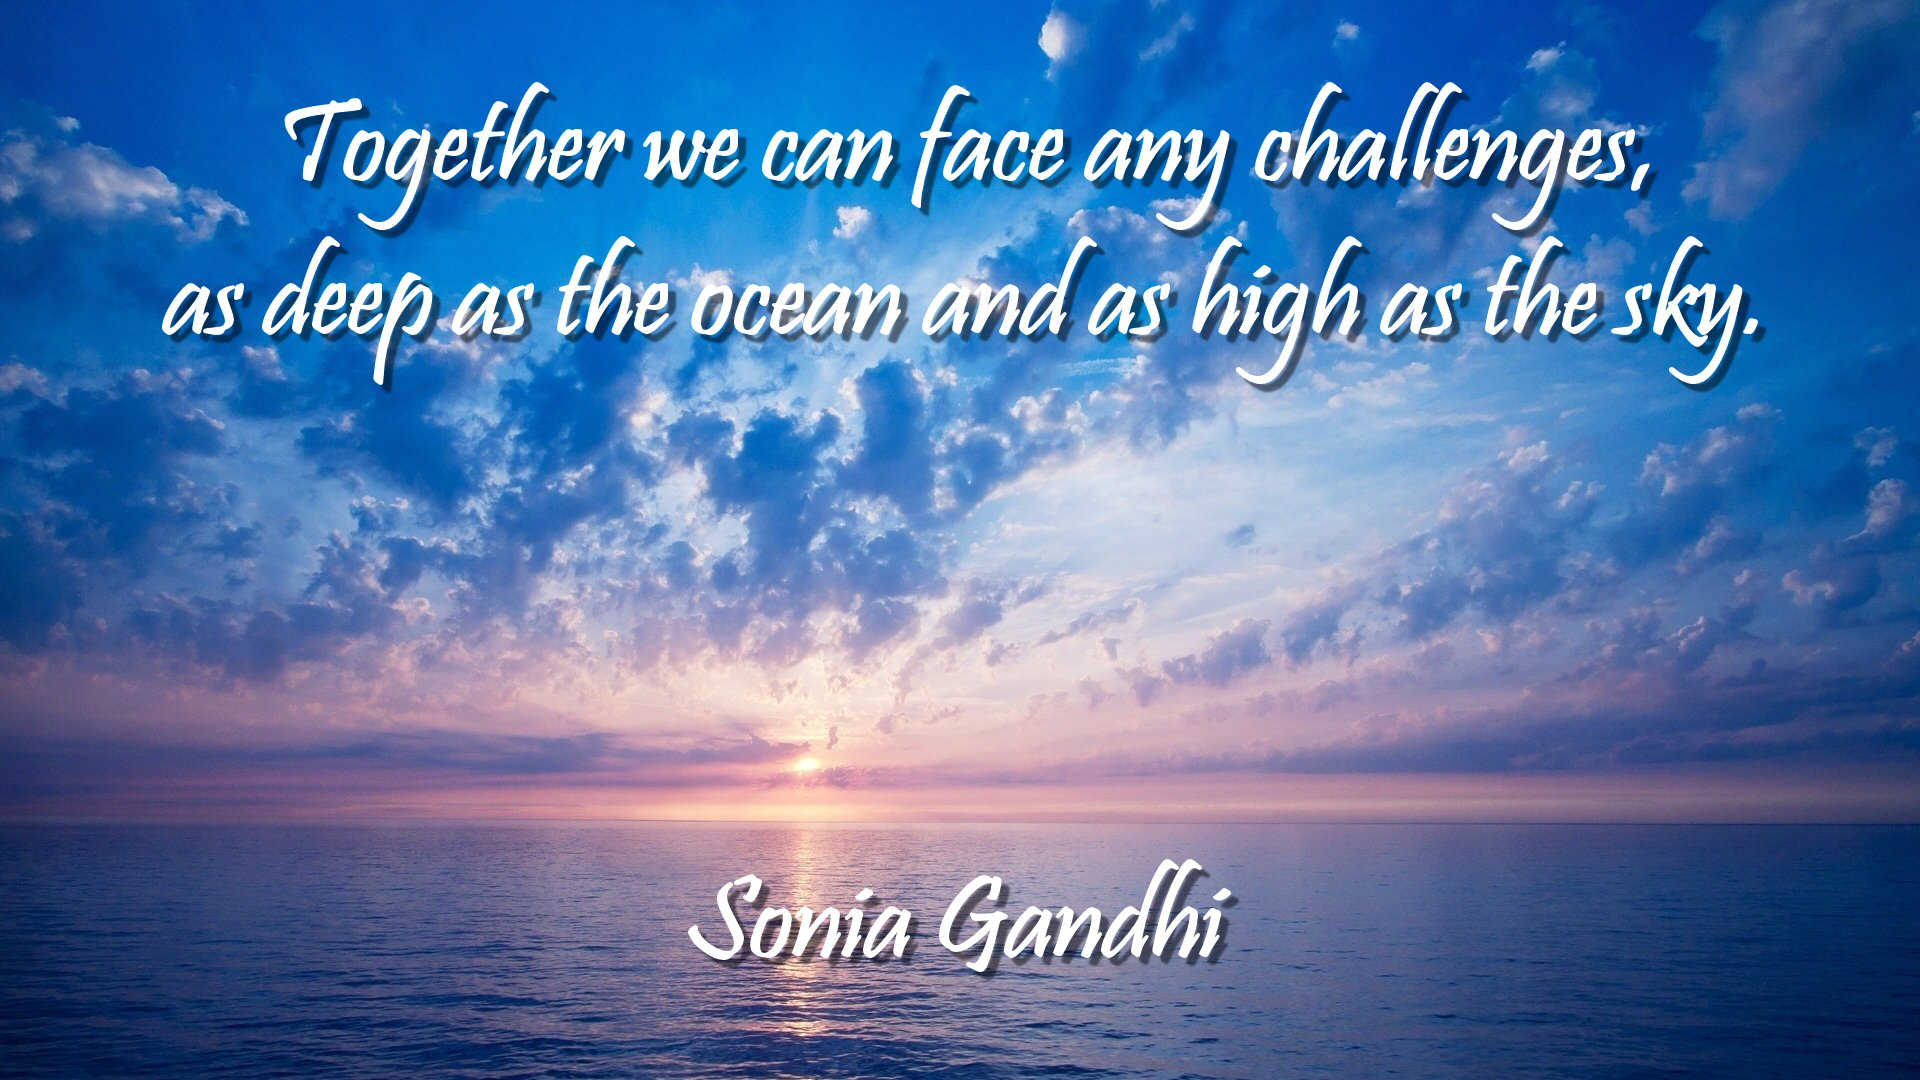 """""""Together we can face any challenge, as deep as the ocean and as high as the sky."""" Sonia Gandhi. Background of a beautiful blue and pale pink scape at dawn, clouds blushed by the rising sun."""